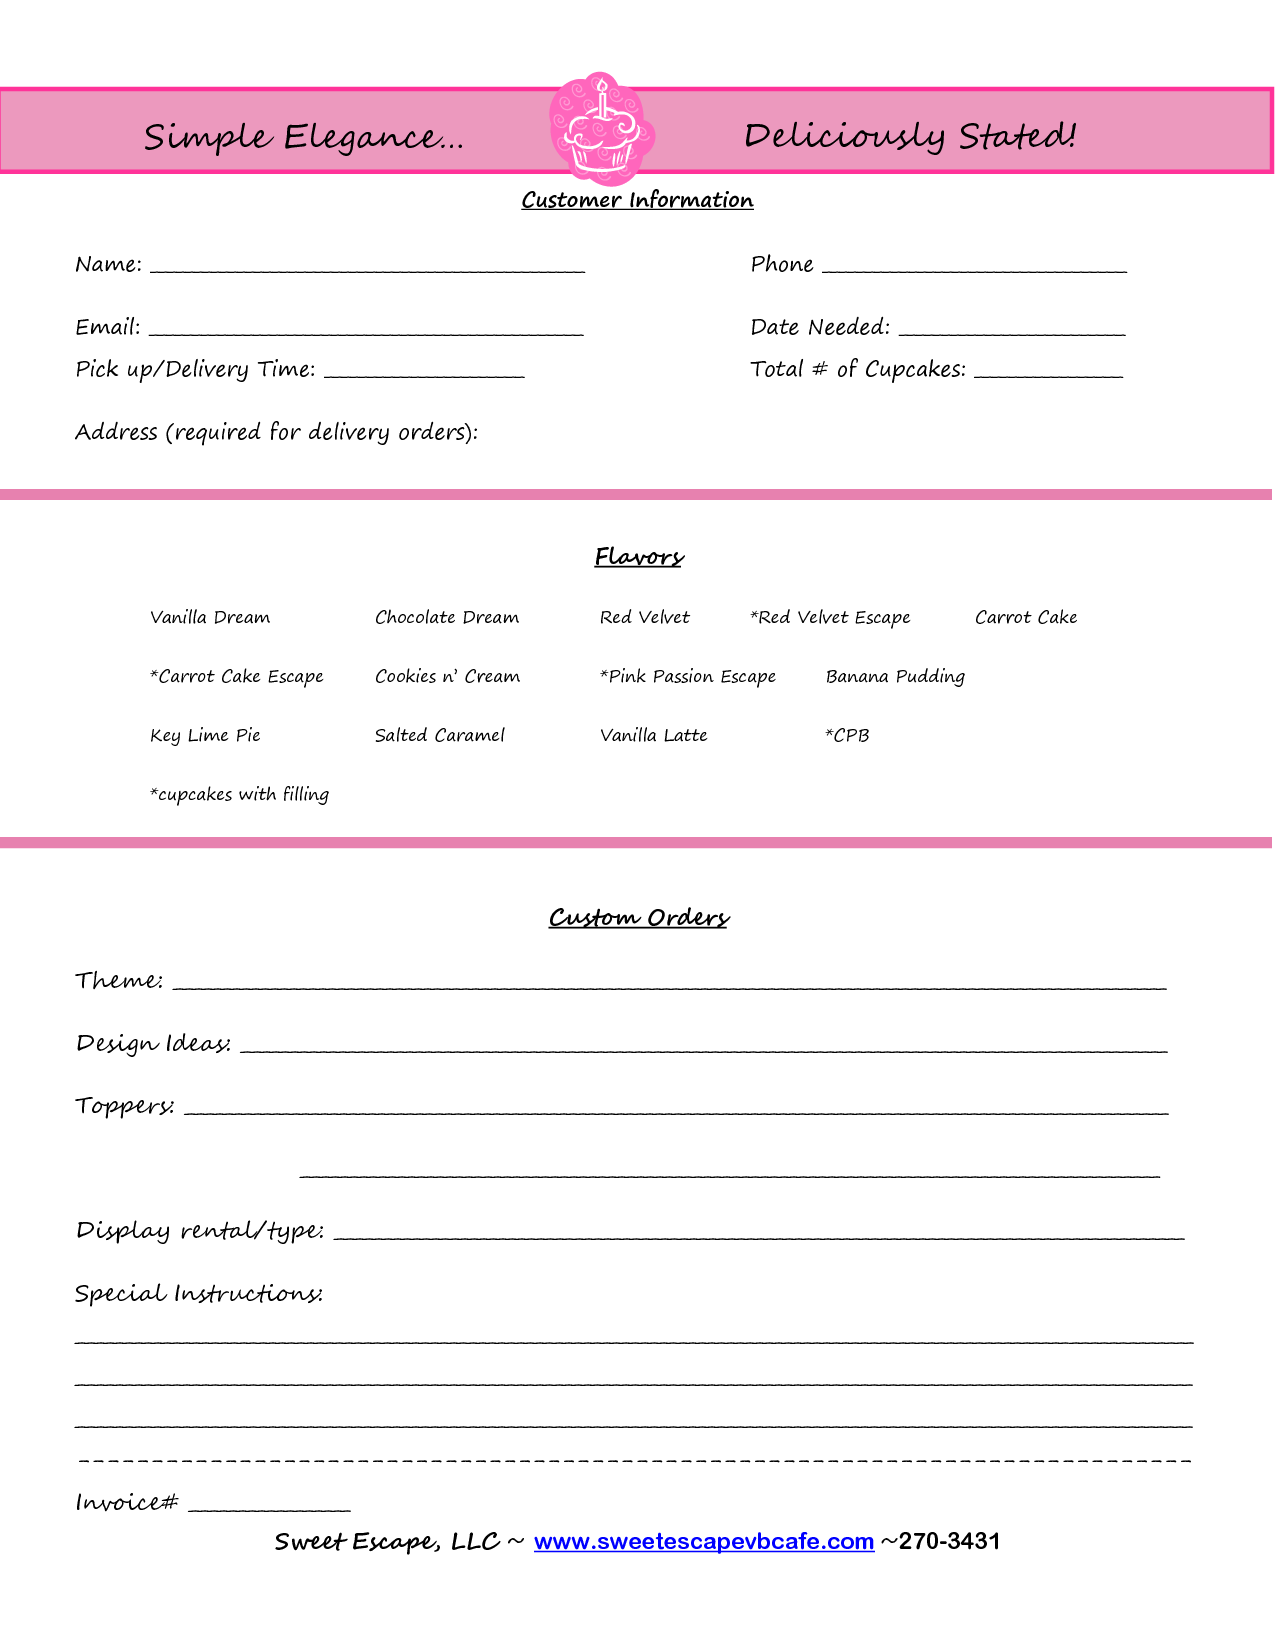 Cake Order Form Templates Free  Delivery Order Form Template